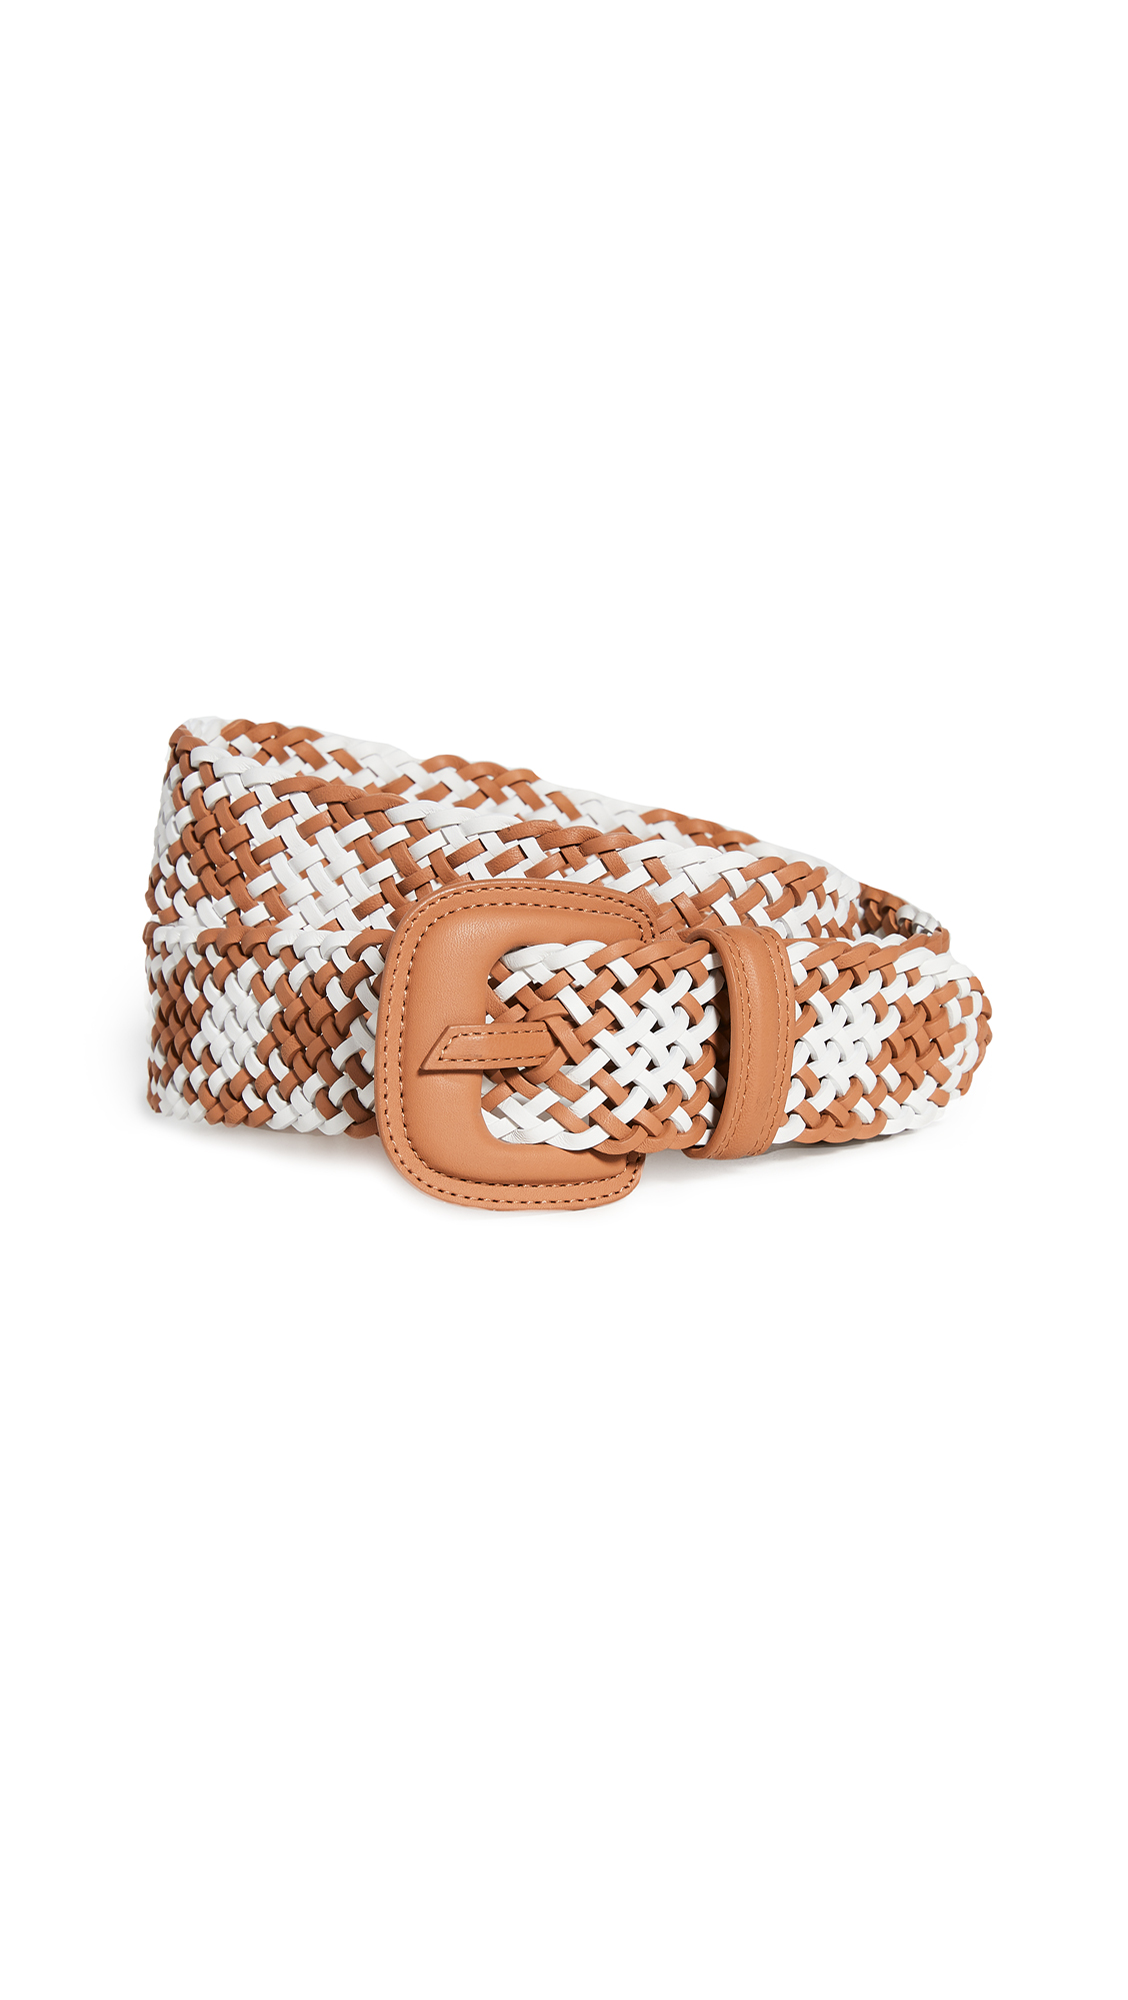 Zimmermann Two Tone Chevron Belt